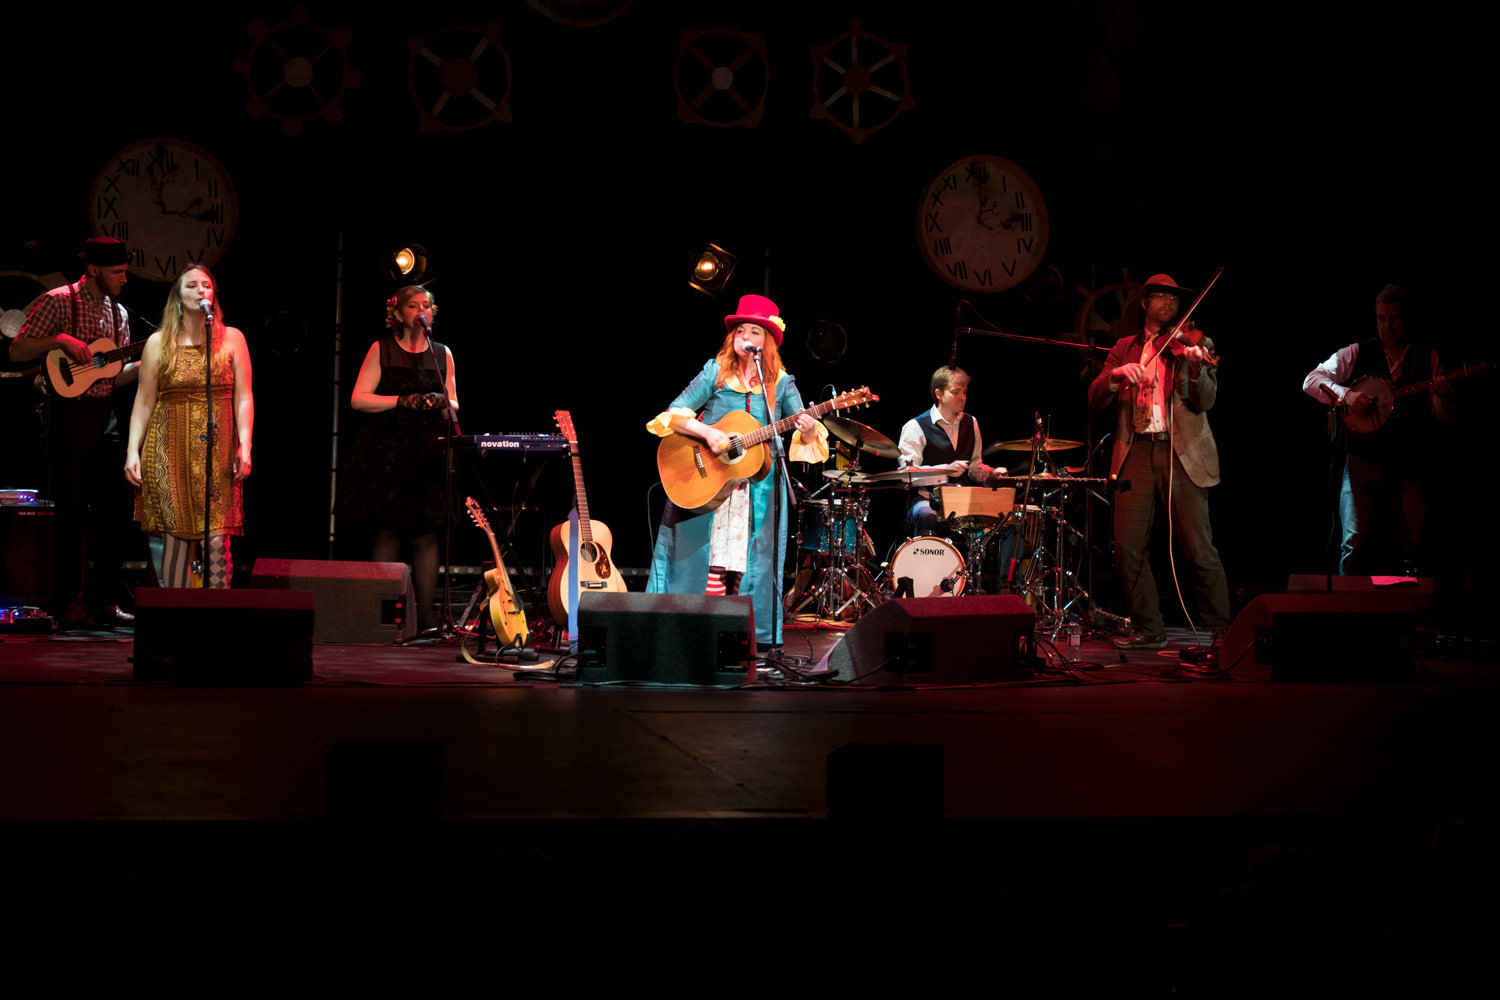 A group of musicians on stage. The light is focused on a woman in a blue overcoat and red top hat, playing a guitar and singing